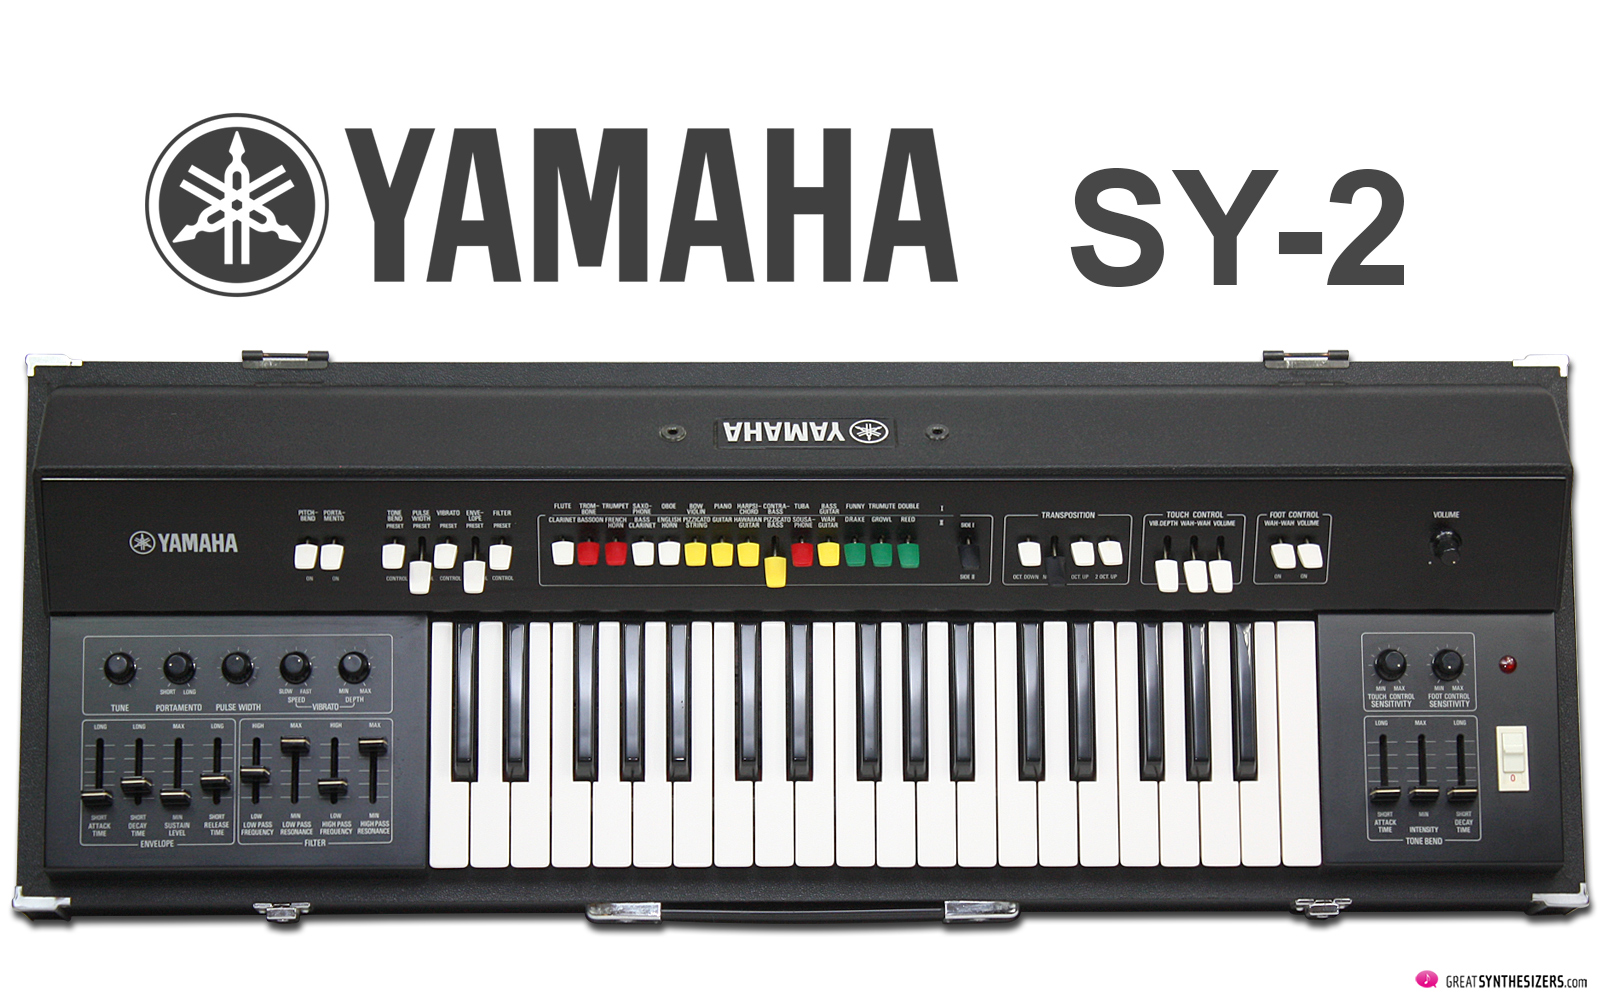 Yamaha SY-2 Synthesizer